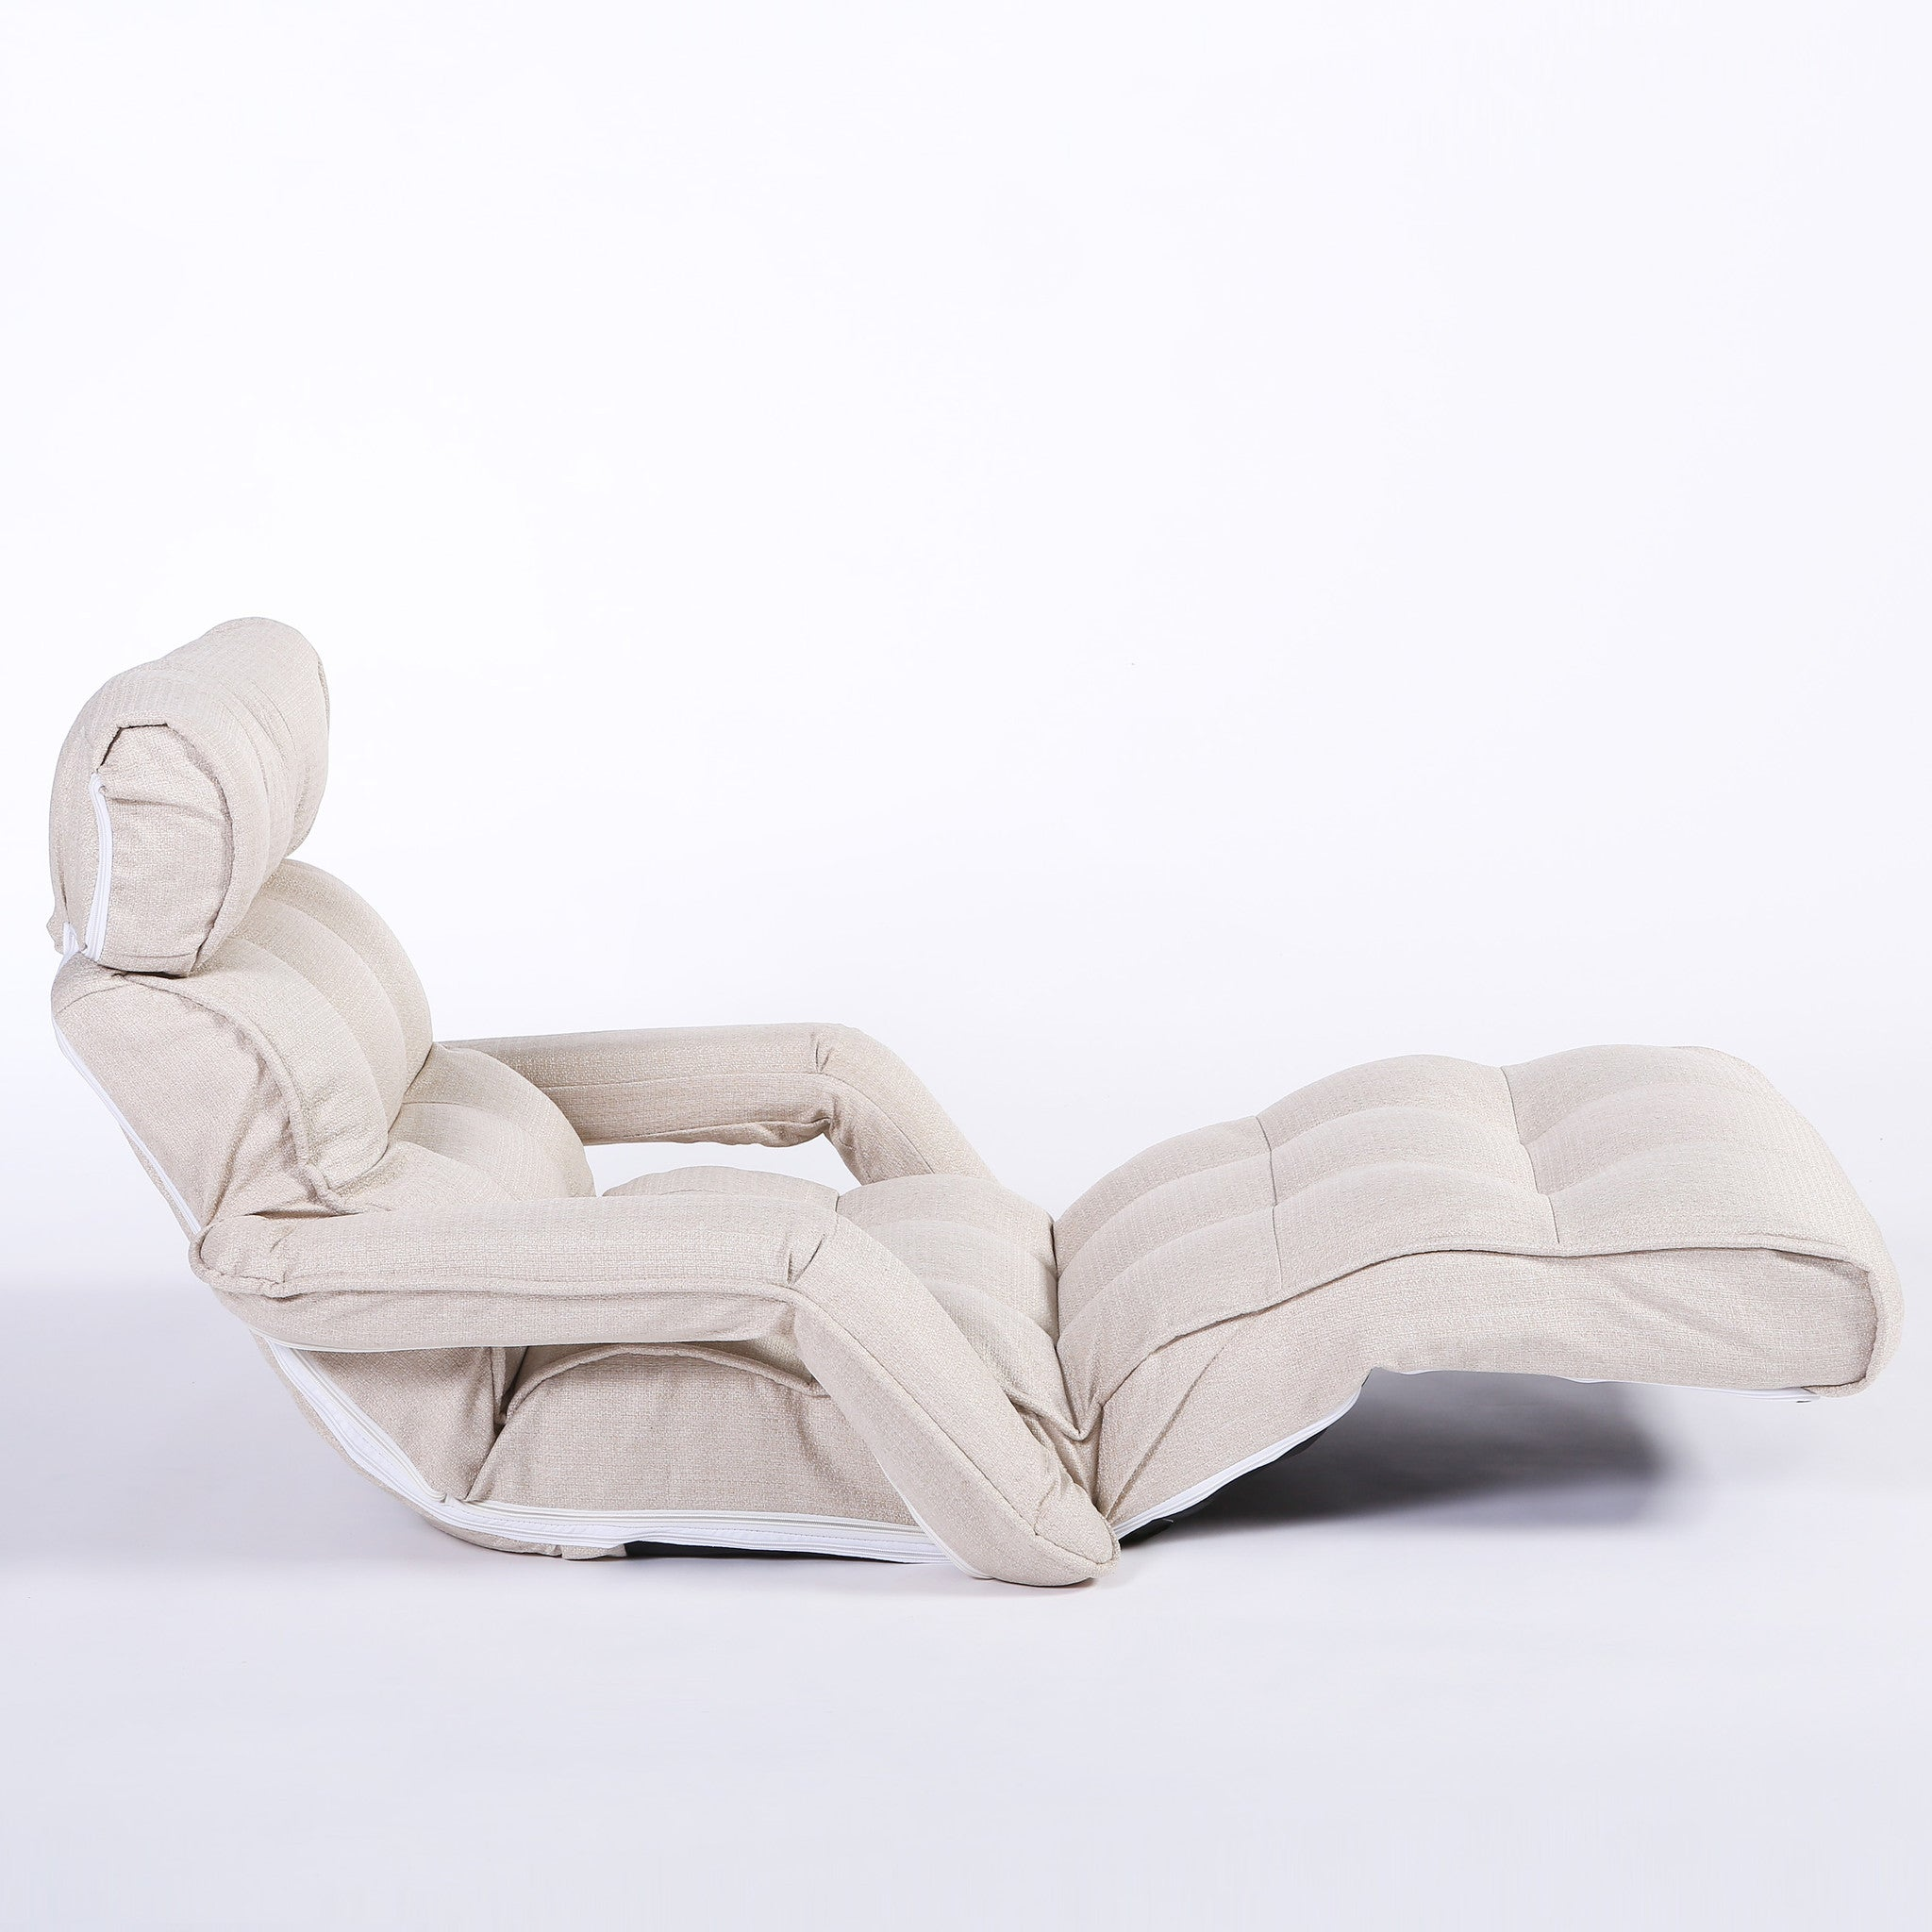 Pro Floor Sofa Chair Recliner With Armrest, White Soft Fabric